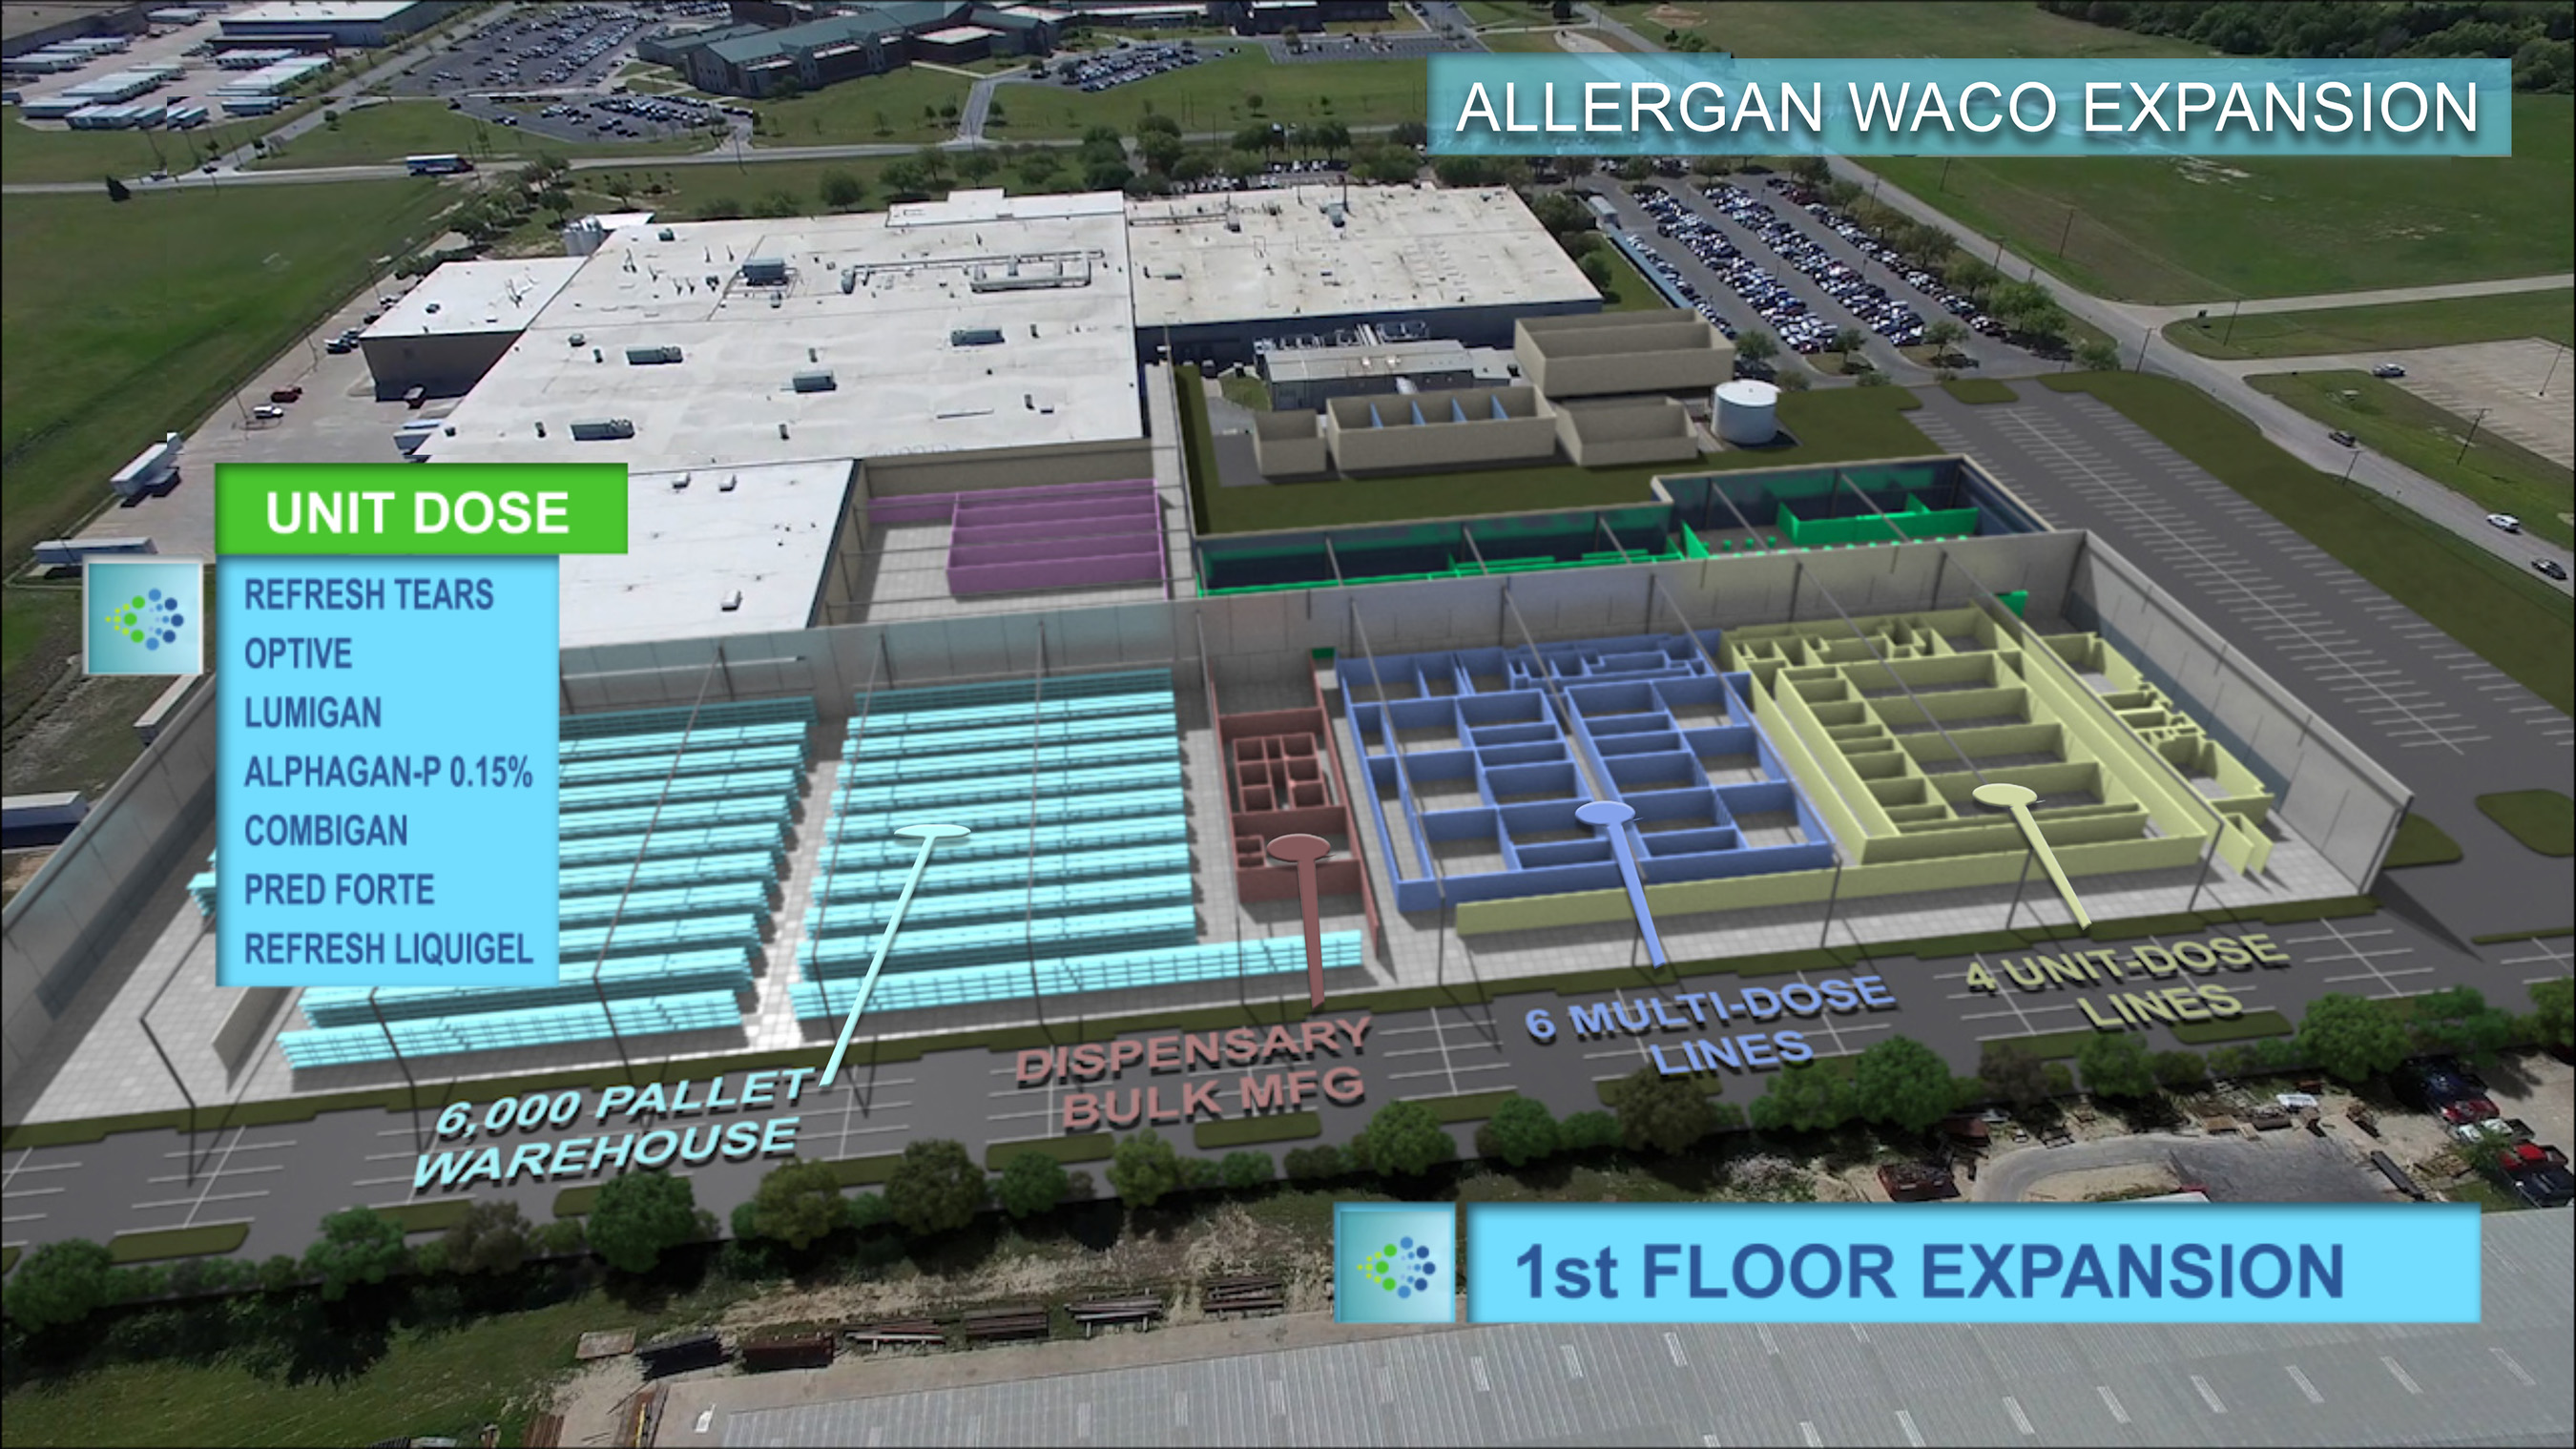 Allergan Waco Expansion - 1st Floor